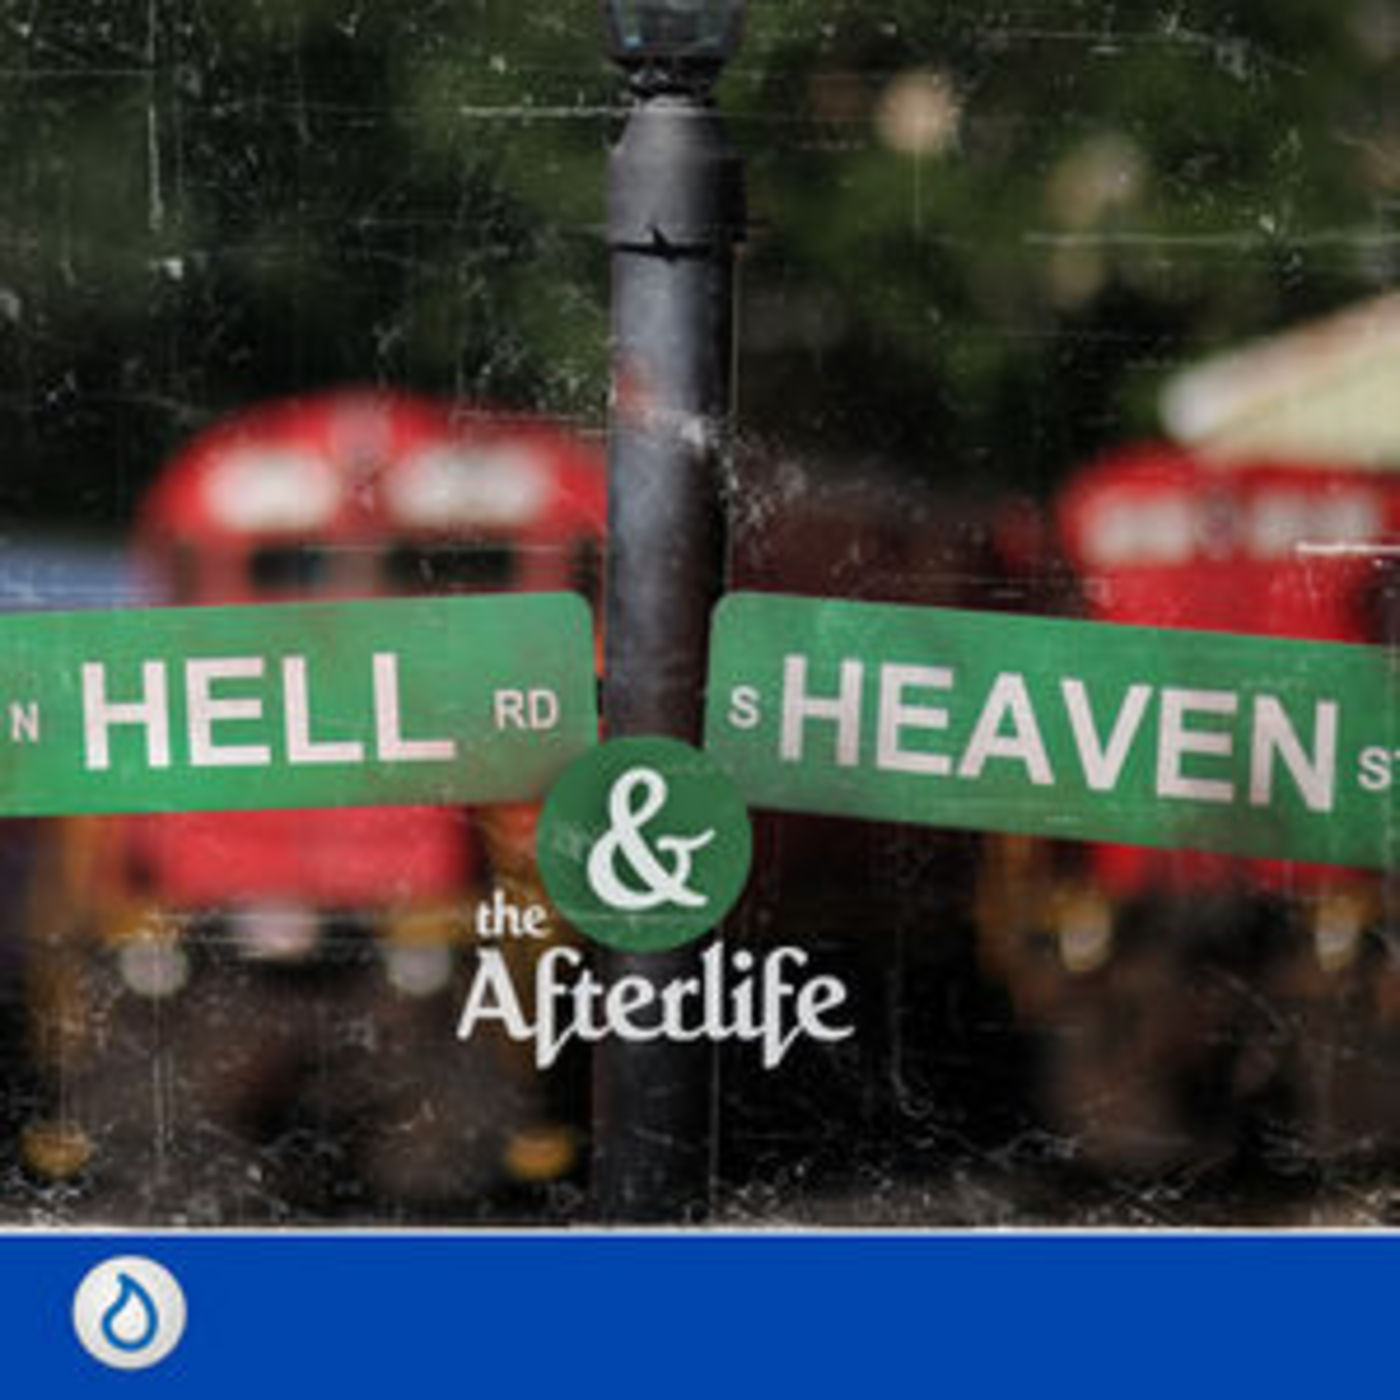 <![CDATA[Hell, Heaven and the Afterlife]]>